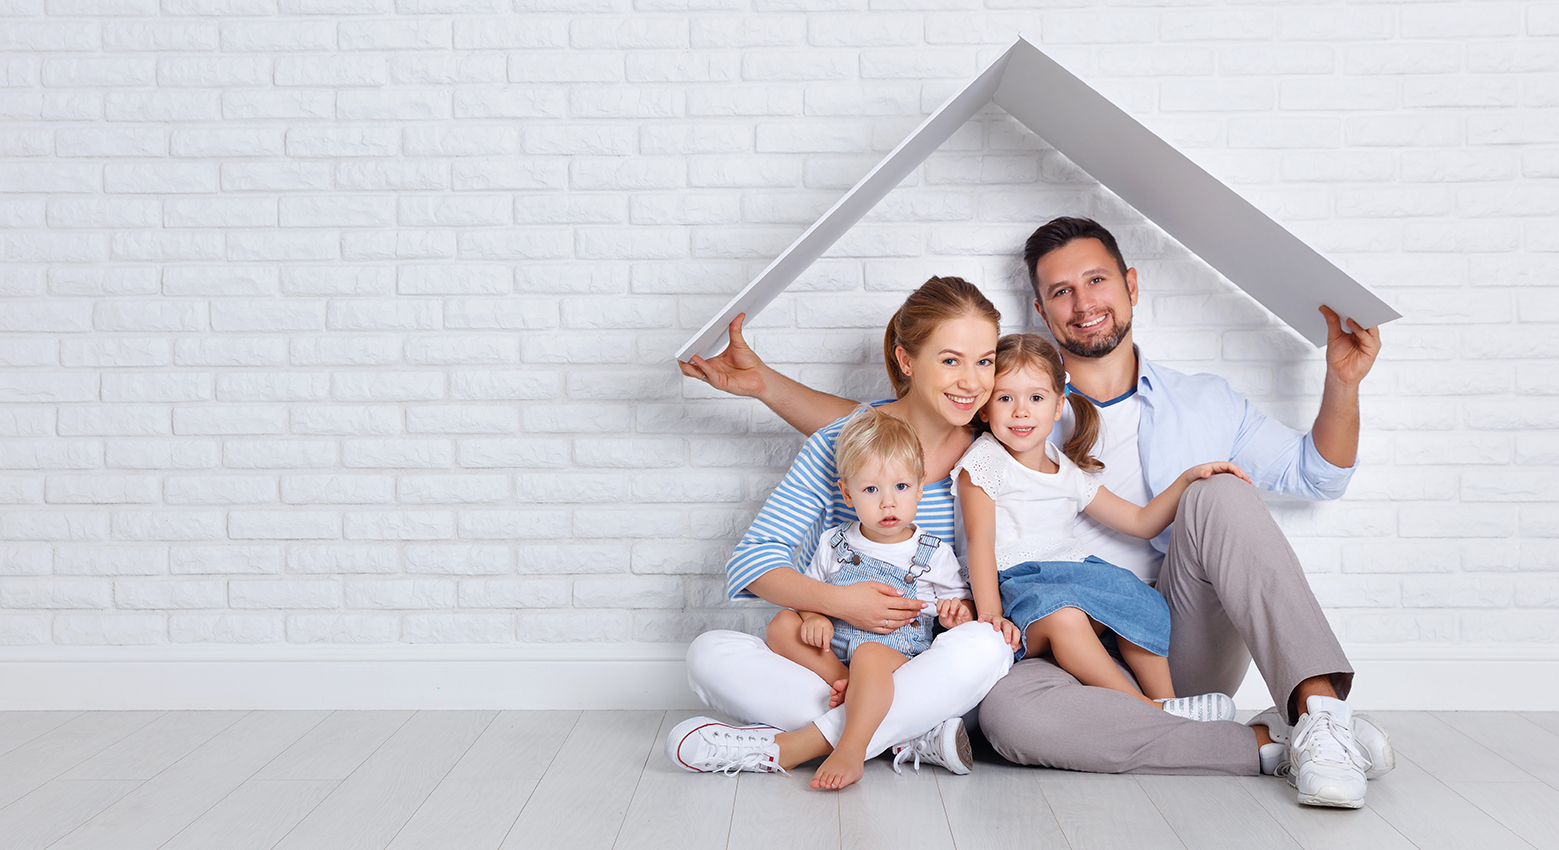 concept housing a young family. mother father and children in new home